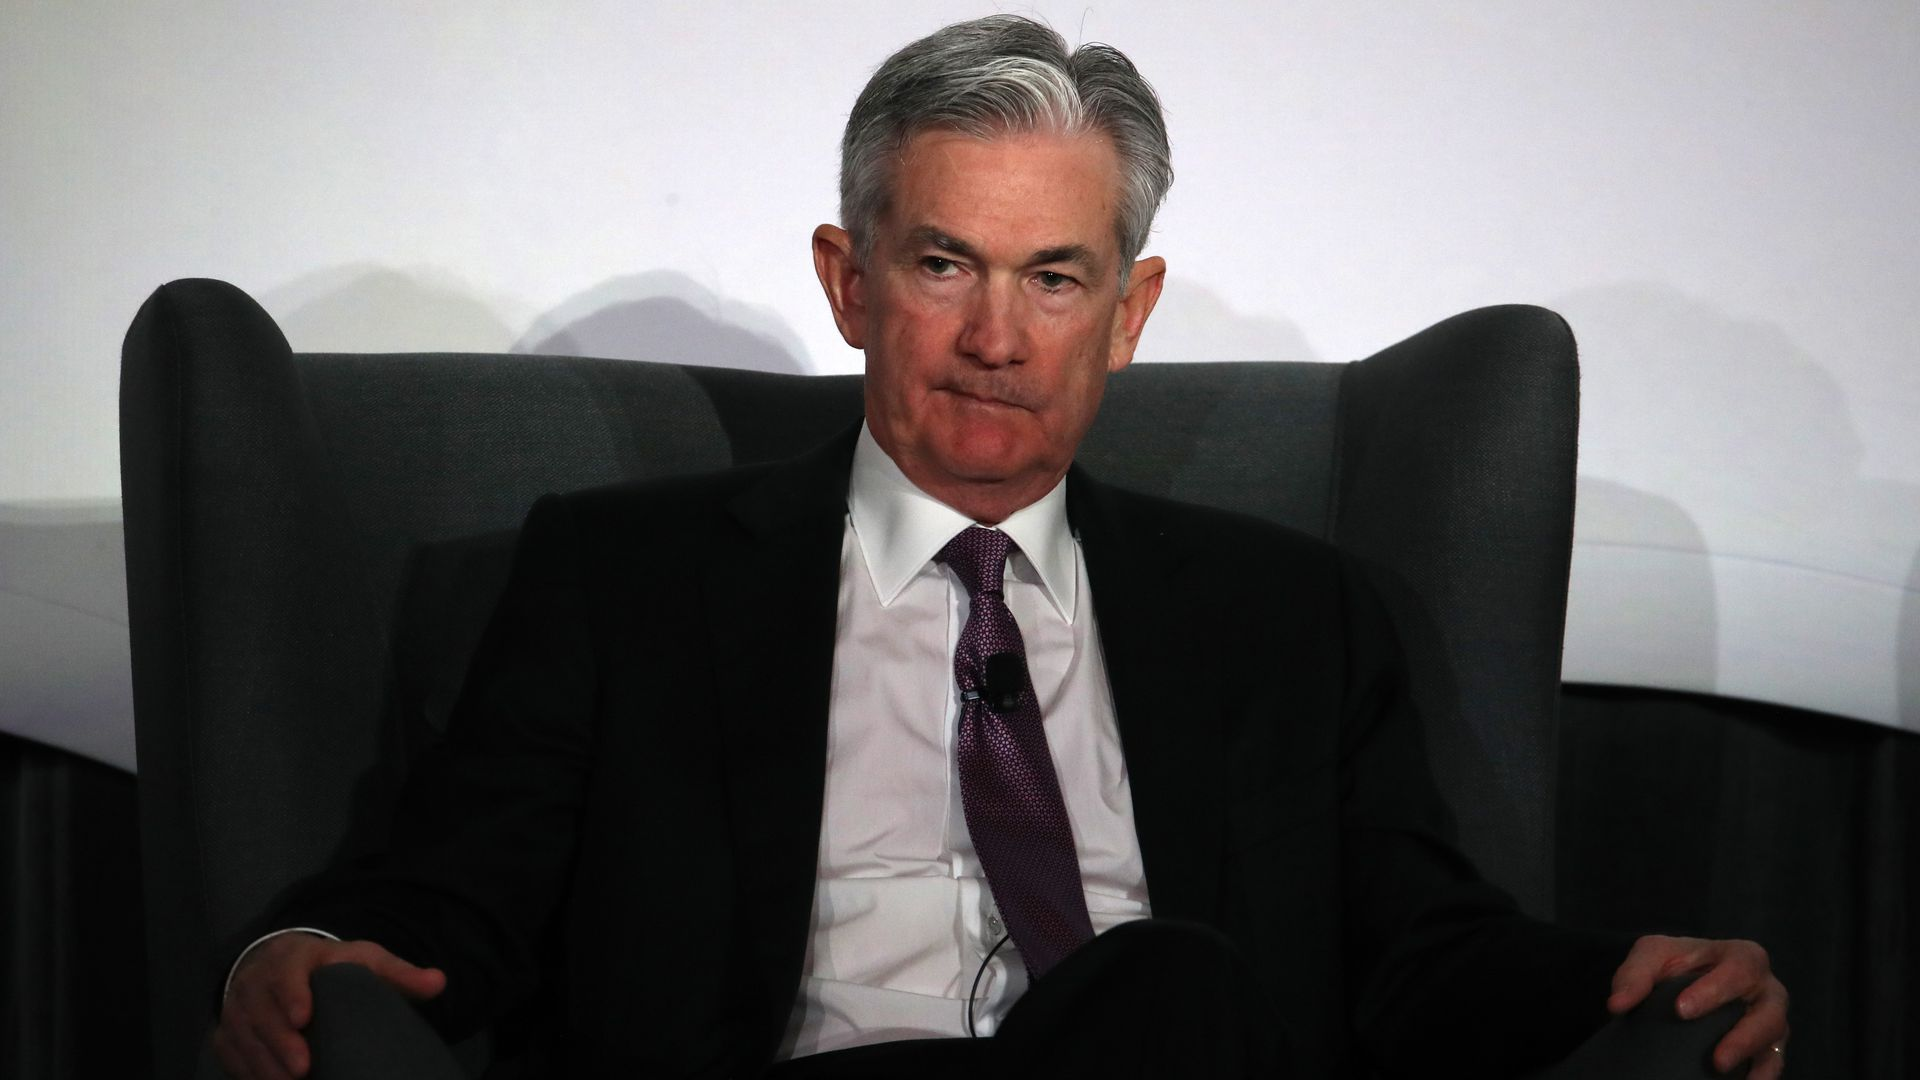 Chairman of the Federal Reserve Jerome Powell sitting in a chair